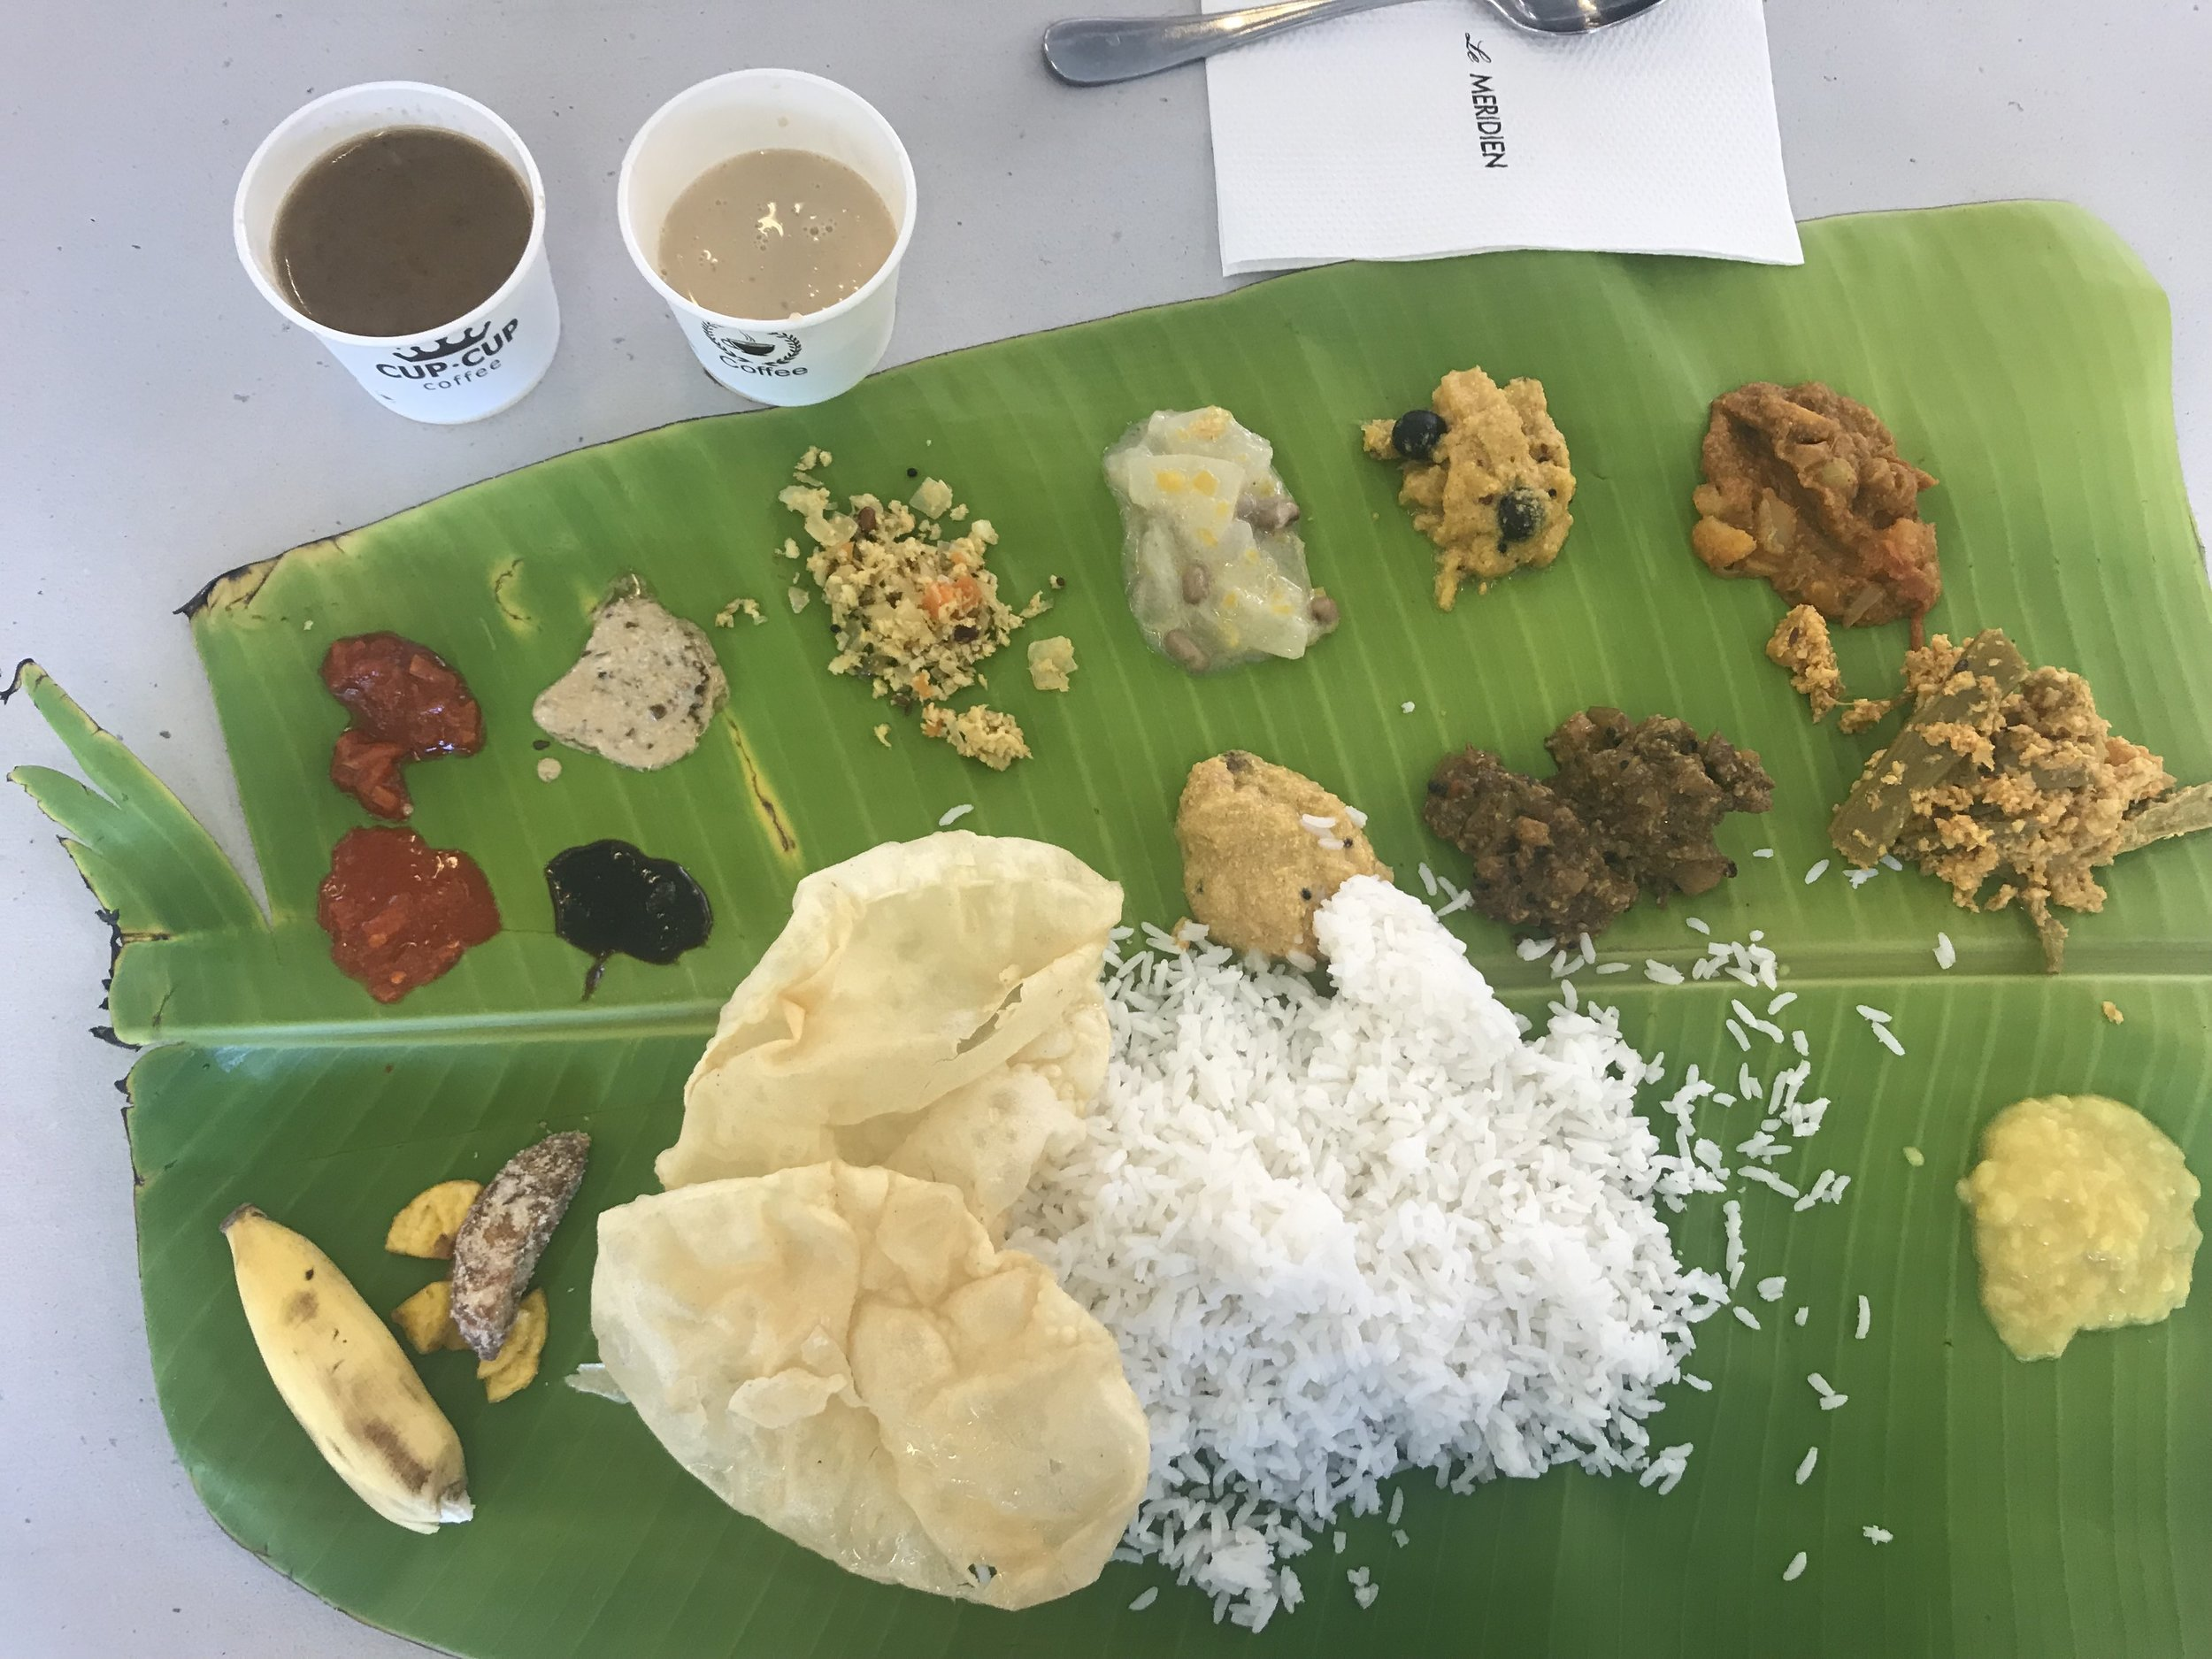 A traditional Indian meal served during one of our lunches.